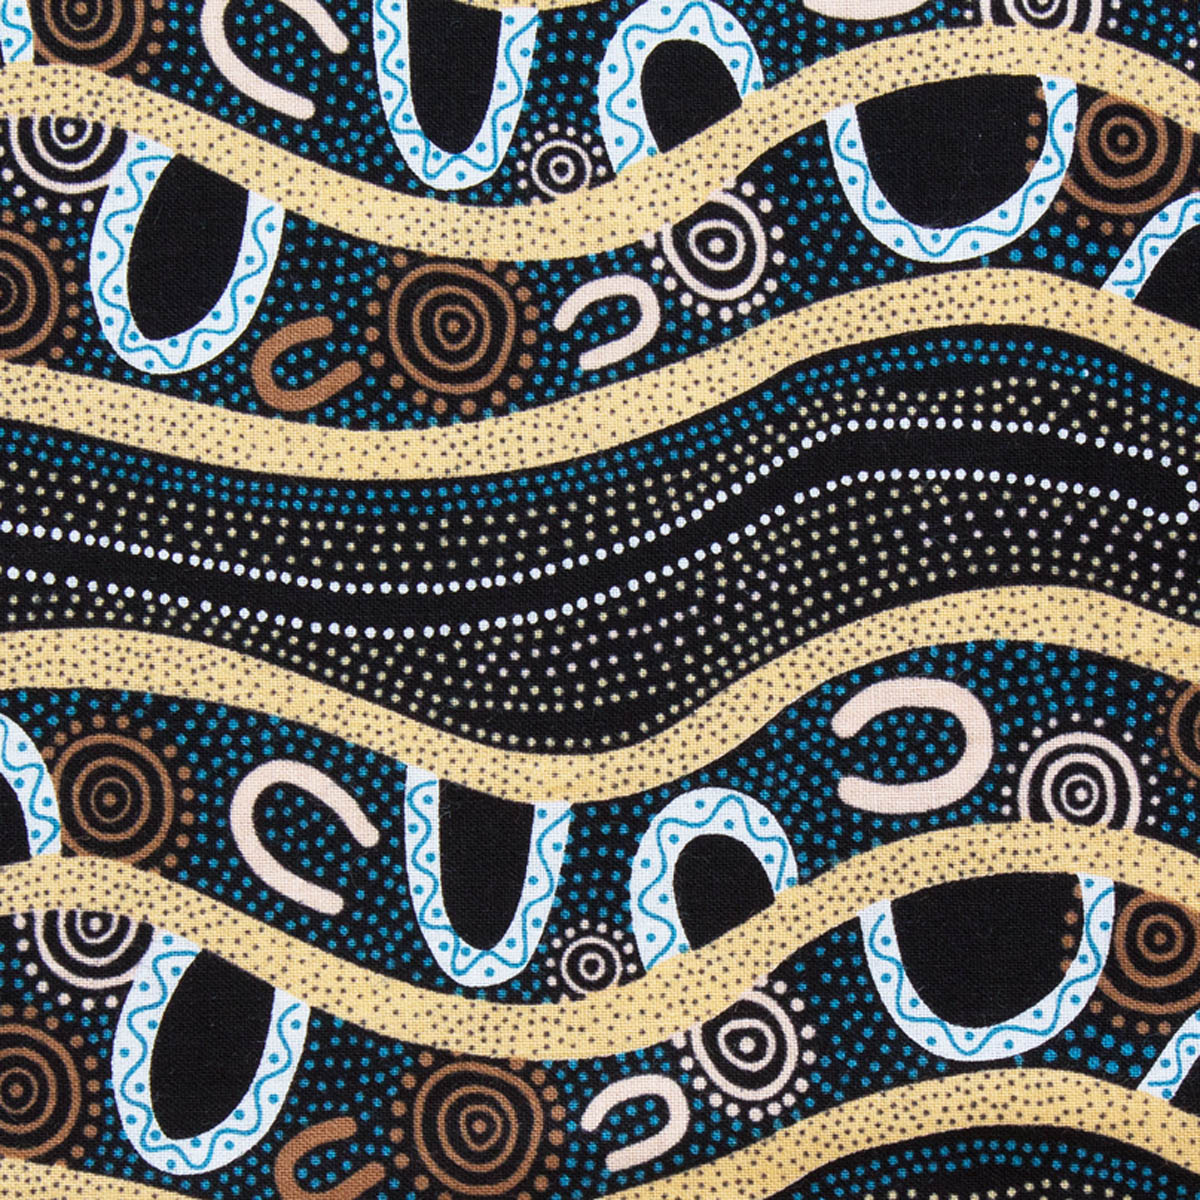 GATHERING BY THE RIVER BLACK by Australian Aboriginal Artist BARBARA EGAN